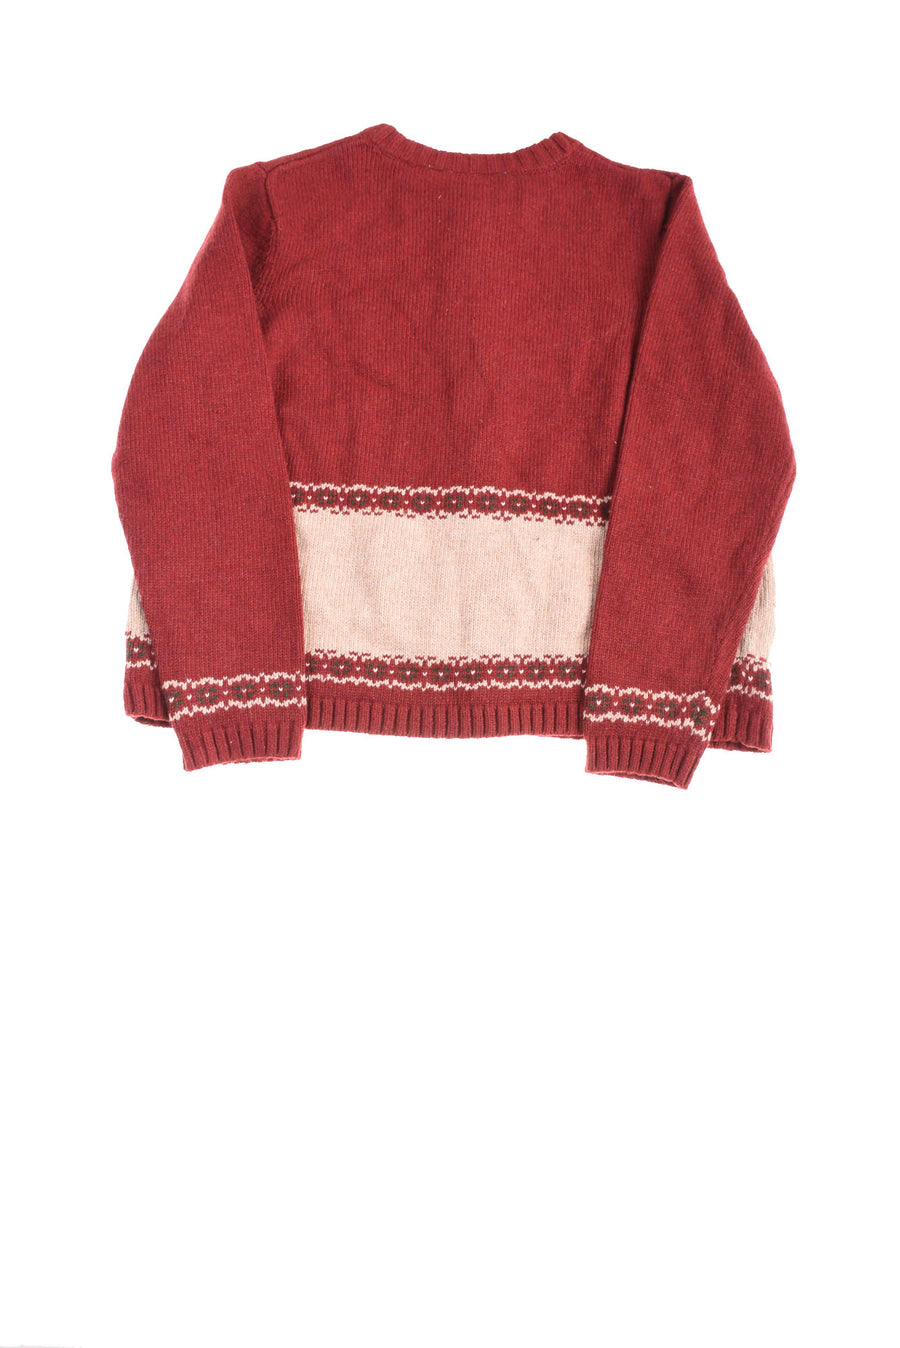 NEW Croft & Barrow Women's Petite Sweater P Large Red